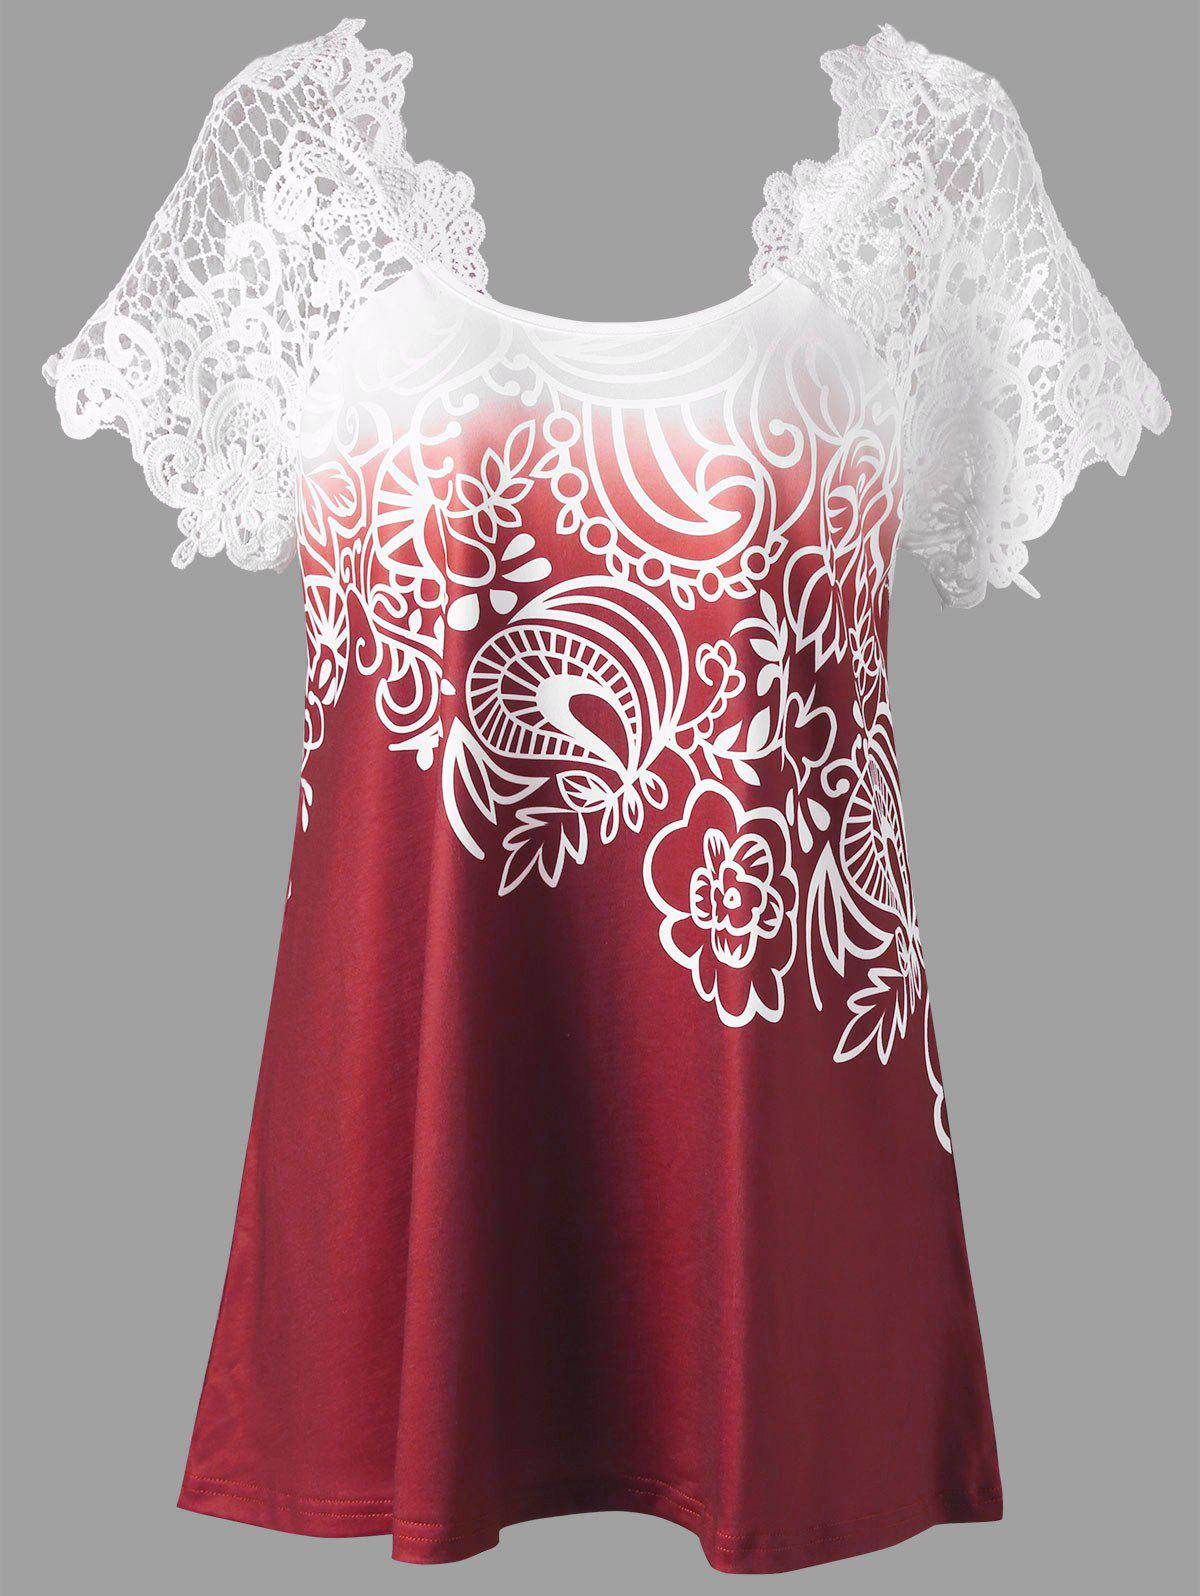 Lace Panel Raglan Sleeve Floral Plus Size TopWOMEN<br><br>Size: 2XL; Color: RED; Material: Polyester,Spandex; Shirt Length: Regular; Sleeve Length: Short; Collar: Round Neck; Style: Fashion; Season: Fall,Spring,Summer; Embellishment: Lace; Pattern Type: Floral; Weight: 0.2300kg; Package Contents: 1 x Top;